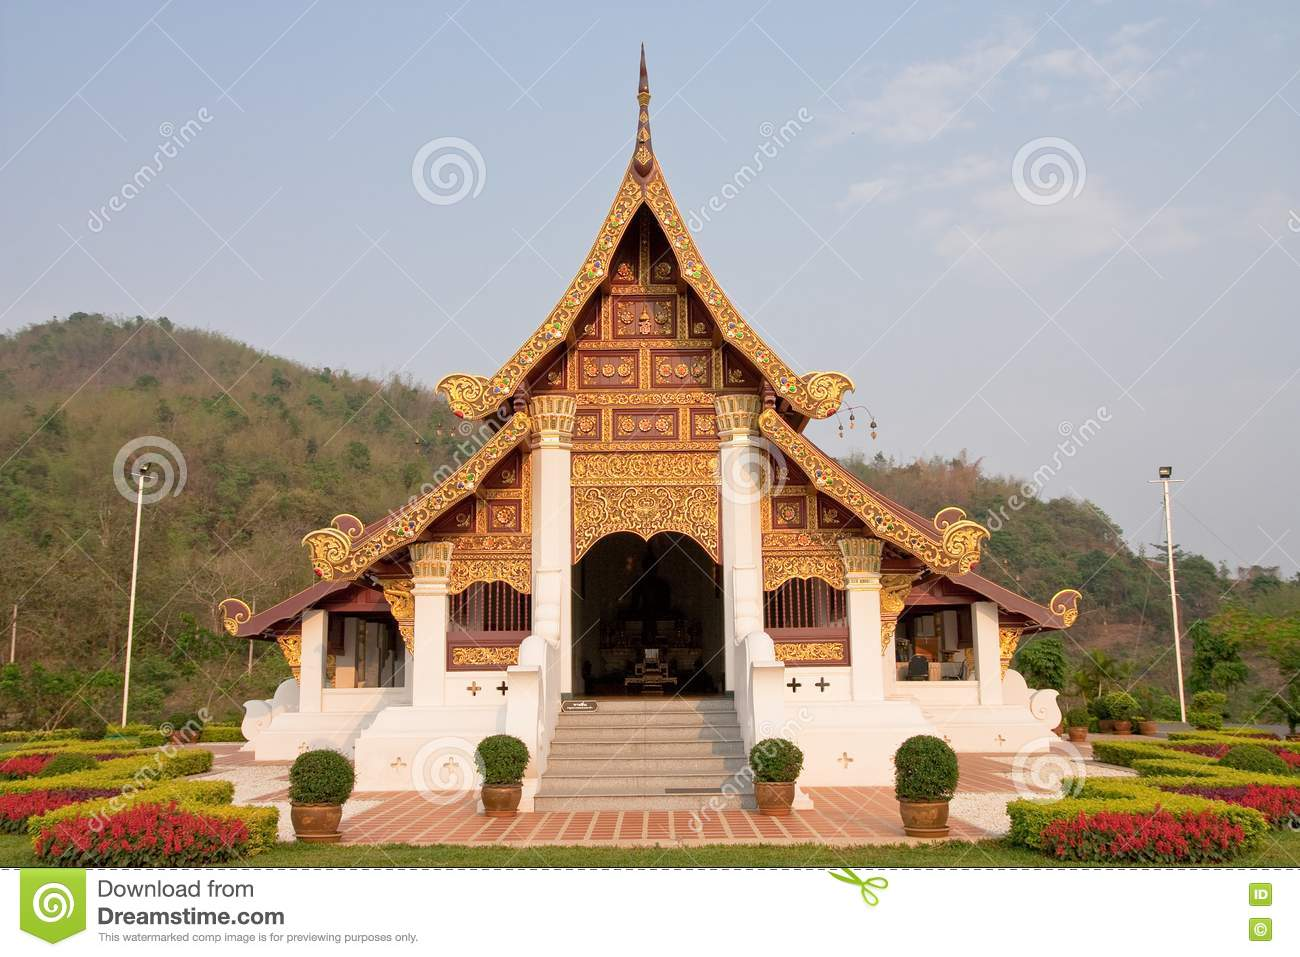 Northern traditional thai style architecture royalty free for Thailand architecture